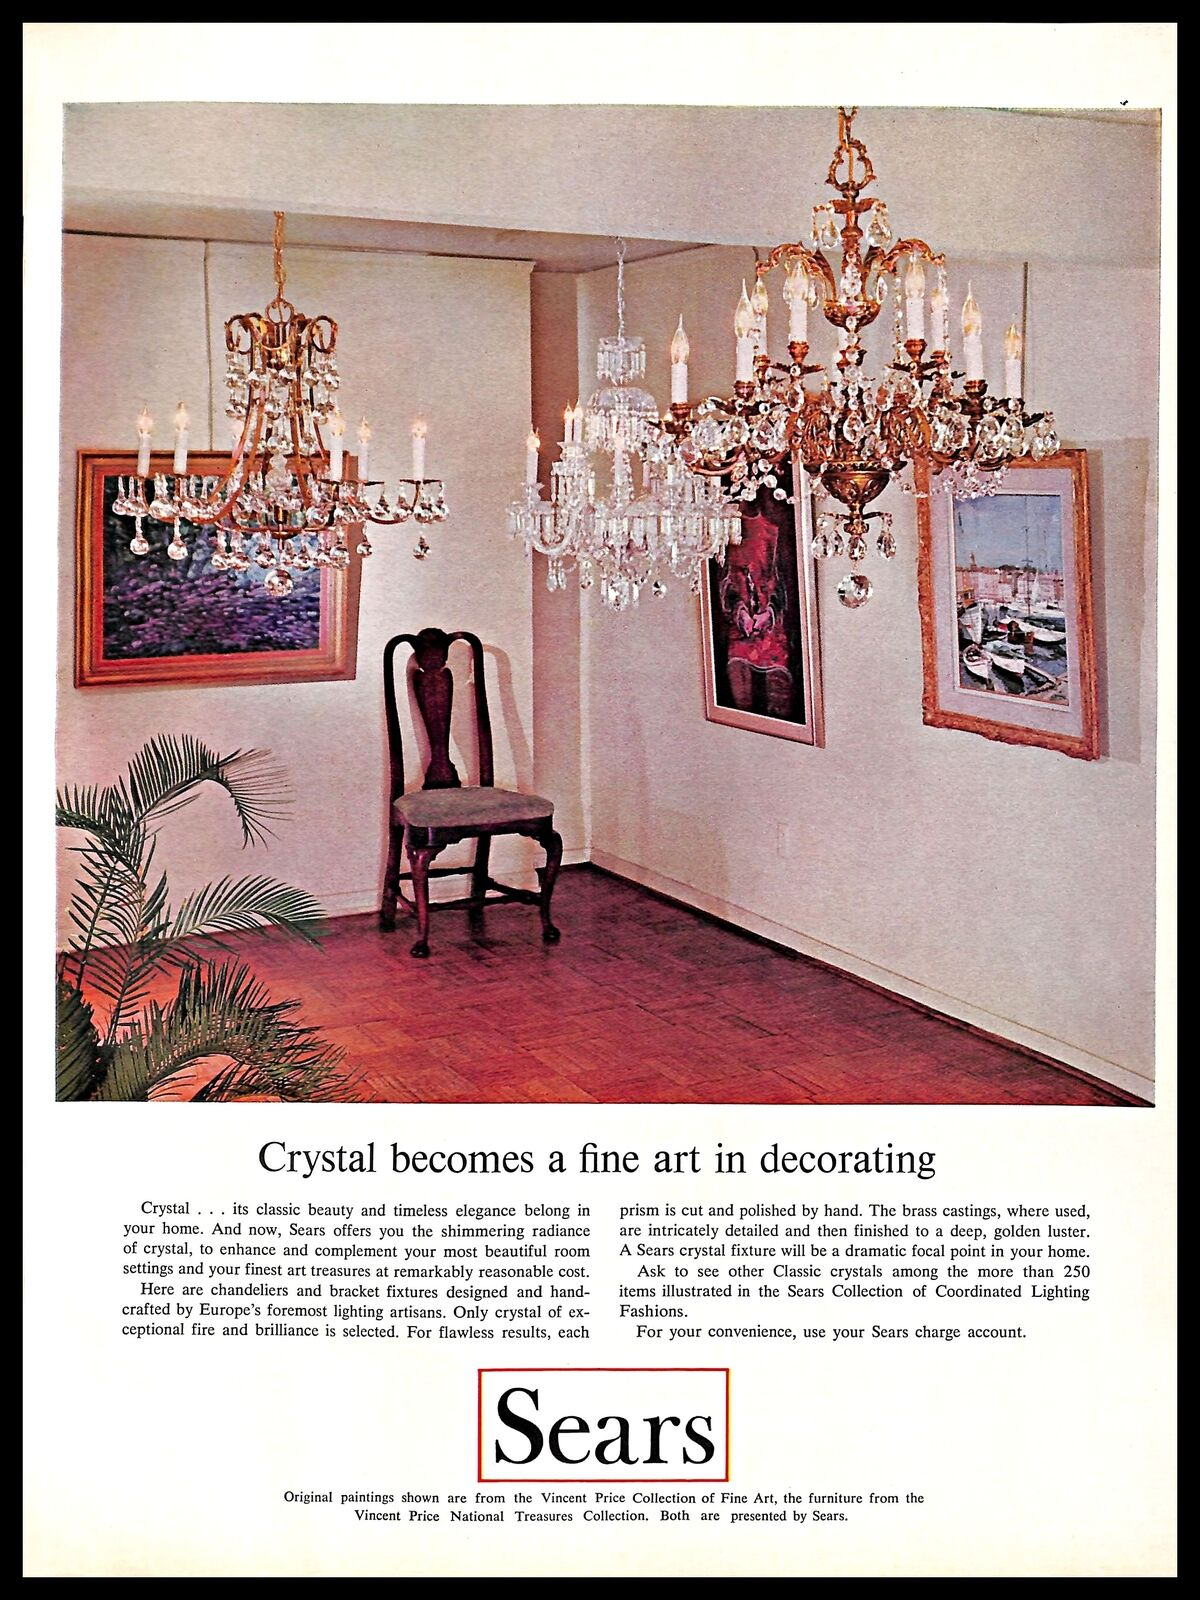 Details About 1966 Sears Crystal Chandeliers Vintage Print Ad Lighting Fixtures Home Decor